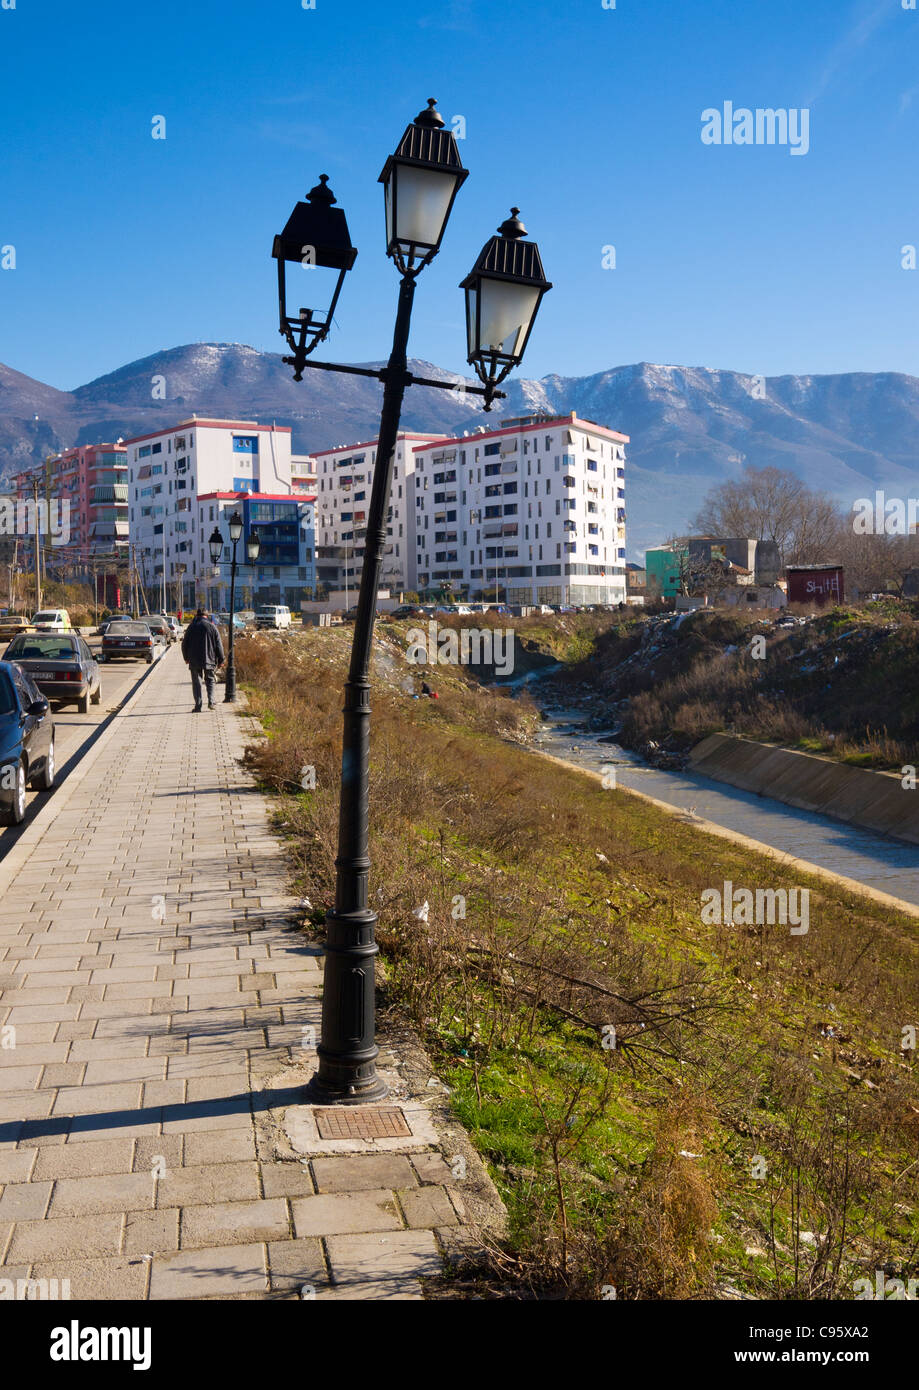 A crooked lamppost on Bulevardi Zhan D'Ark, Tirana, Albania, beside the banks of the River Lana. - Stock Image